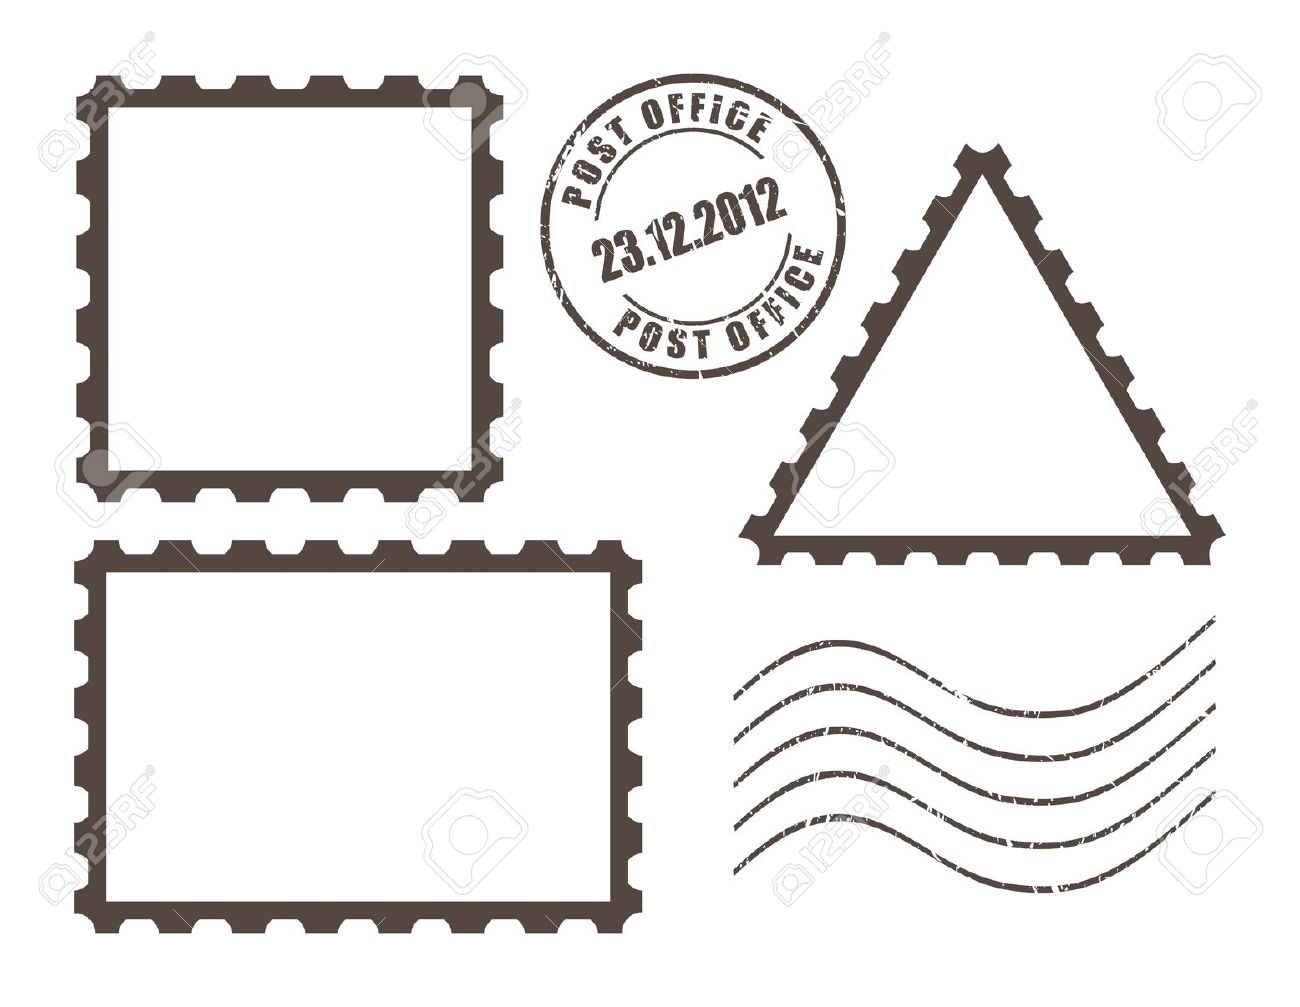 Beautiful of letter letters. Stamp clipart free